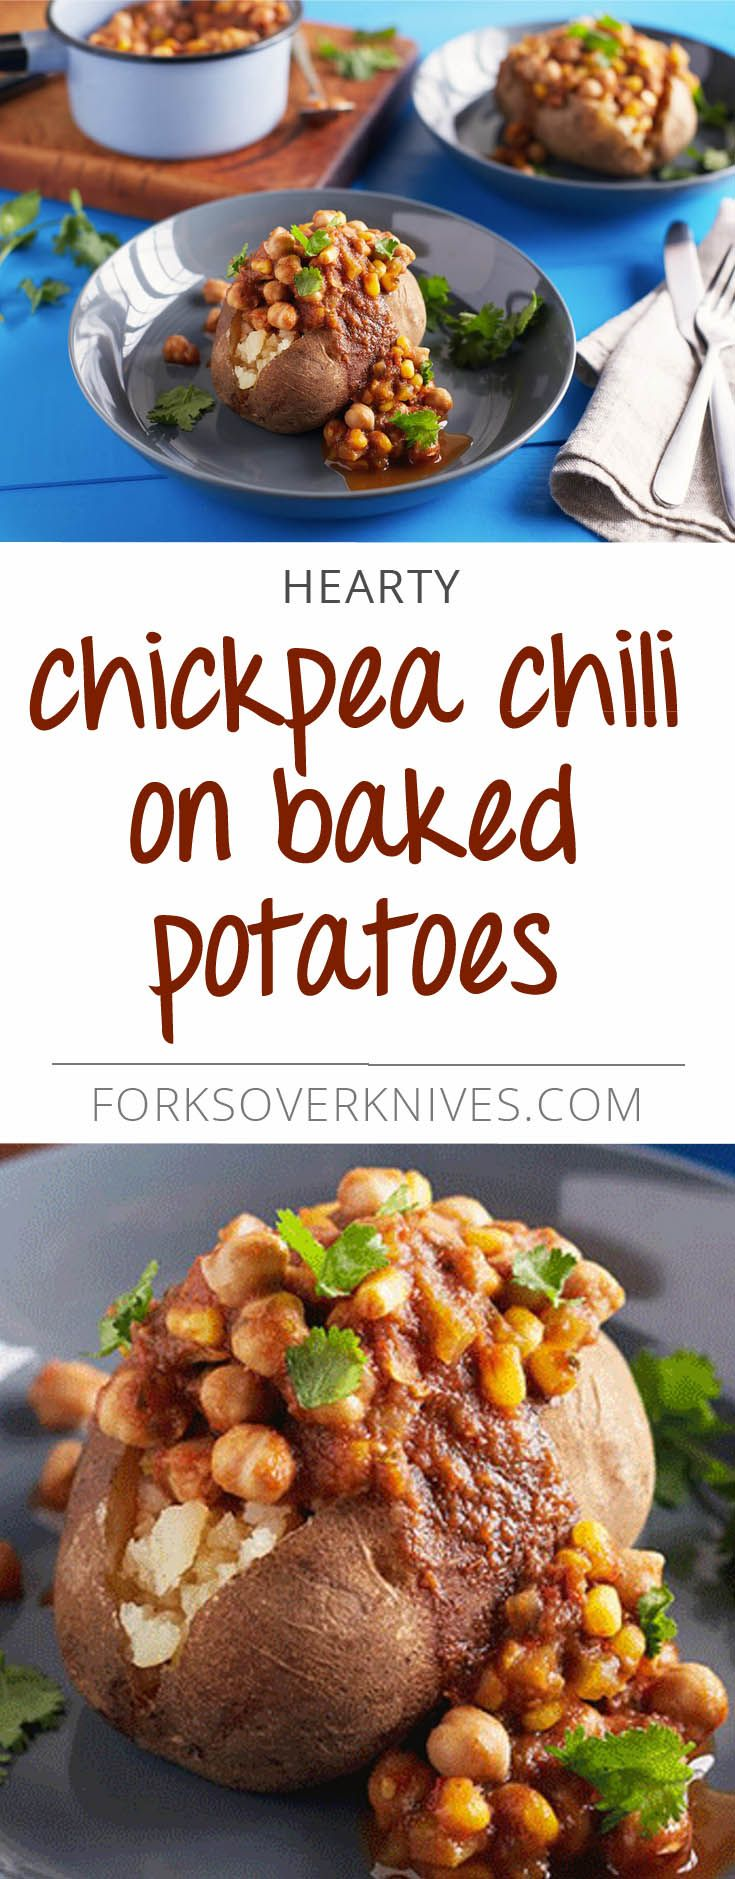 Chickpea Chili on Baked Potatoes - Plant-Based Vegan Recipe